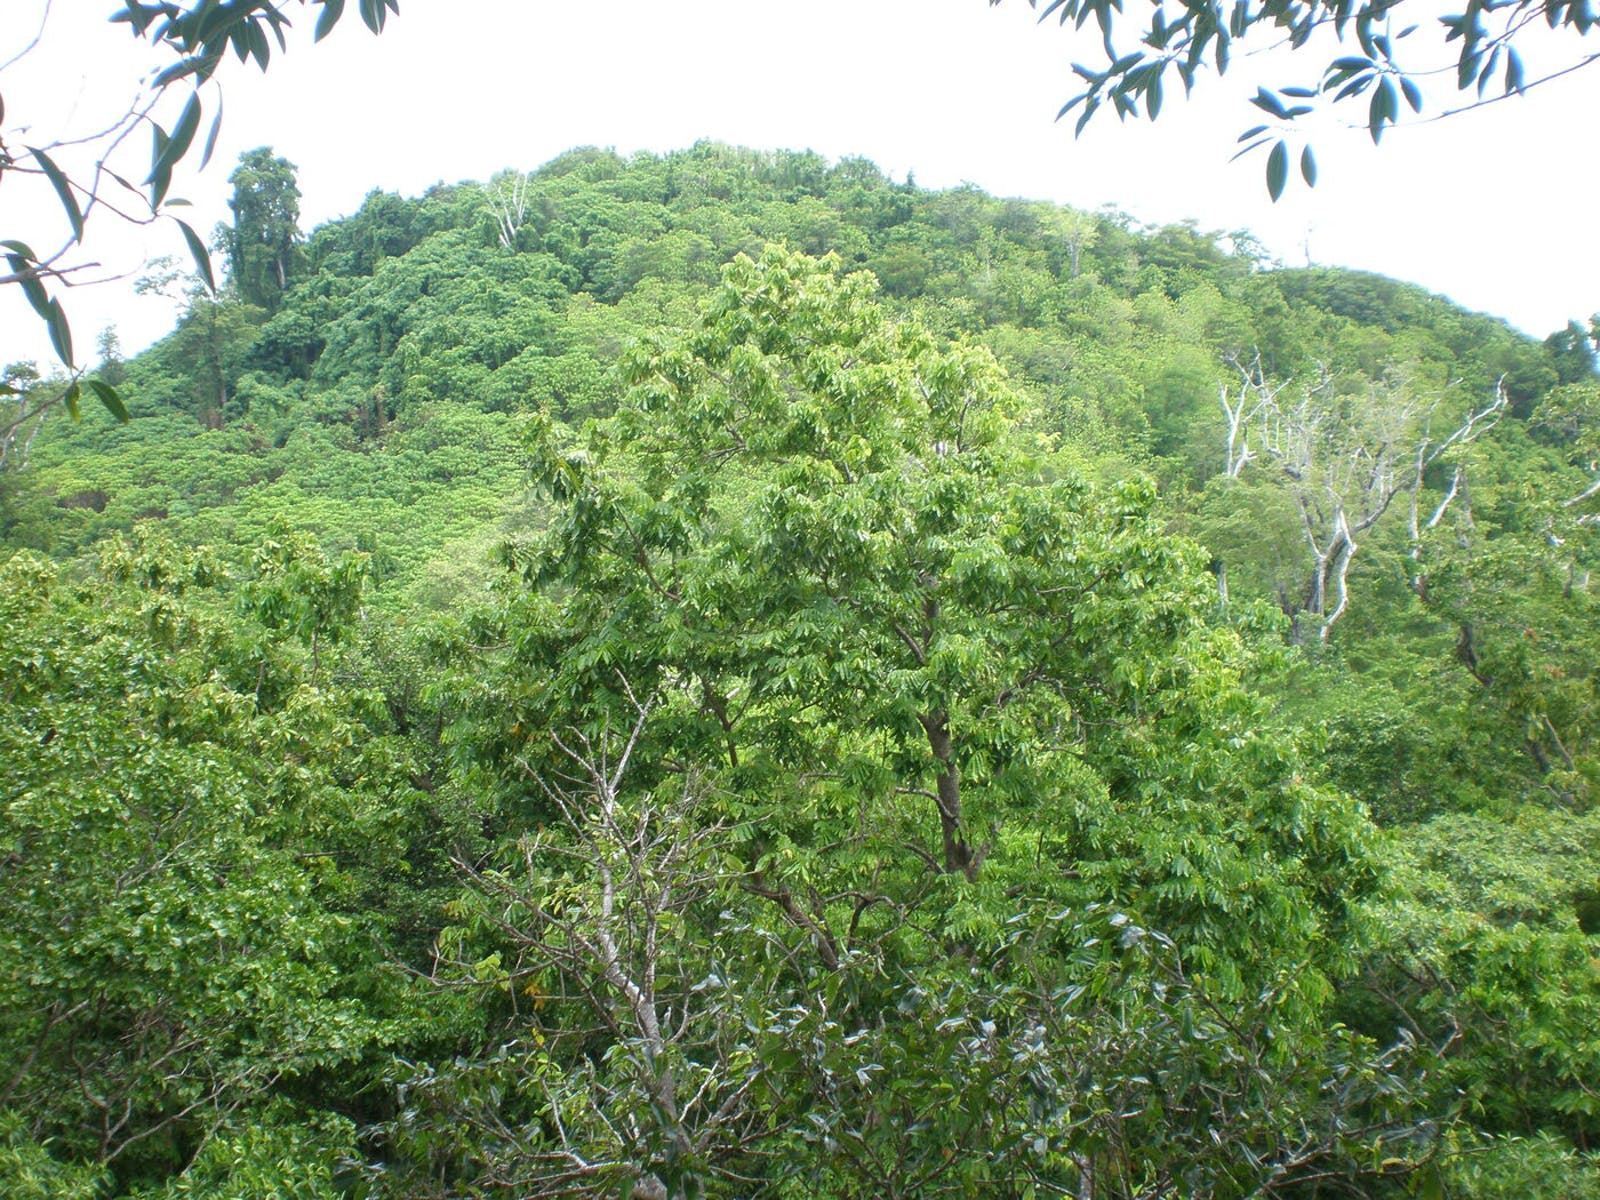 Central Polynesian Tropical Moist Forests